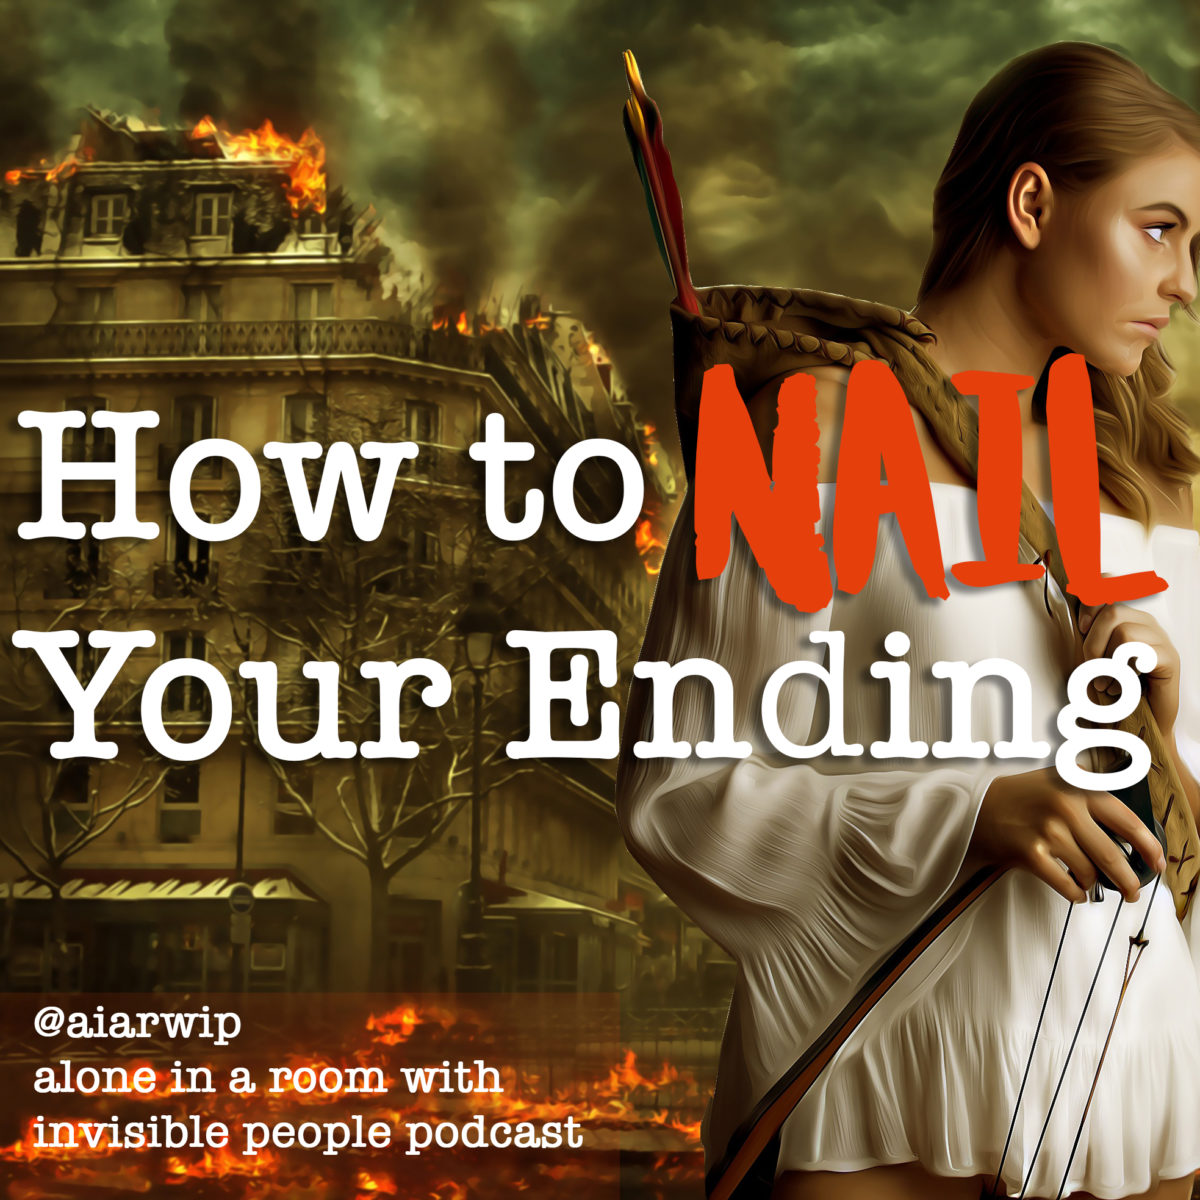 Episode 78: How to Nail Your Ending